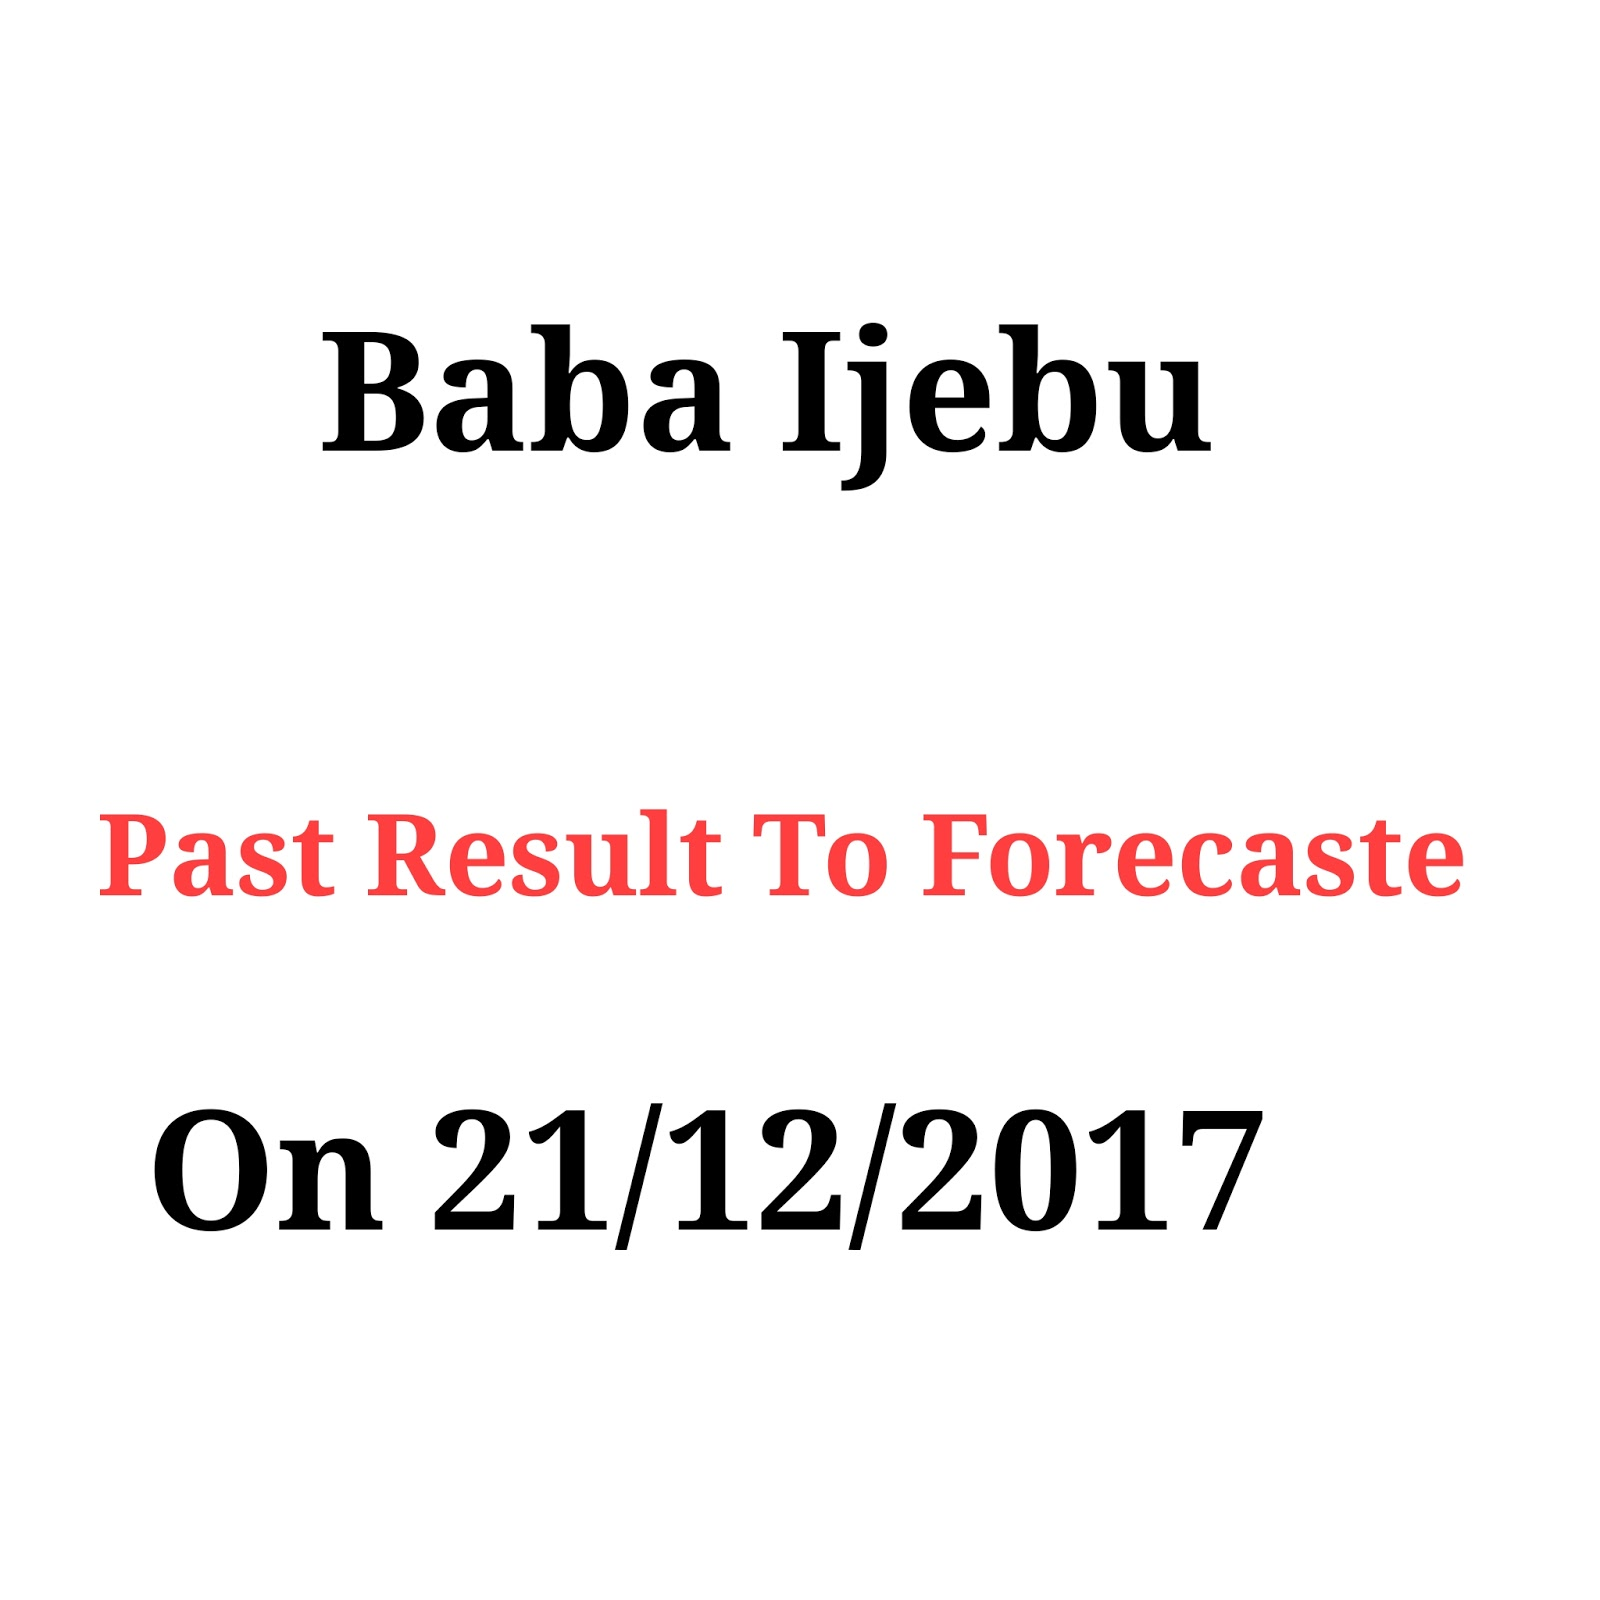 Baba Ijebu Lottery Past Result To Forecast On 21/12/2017 - Rafiulotto